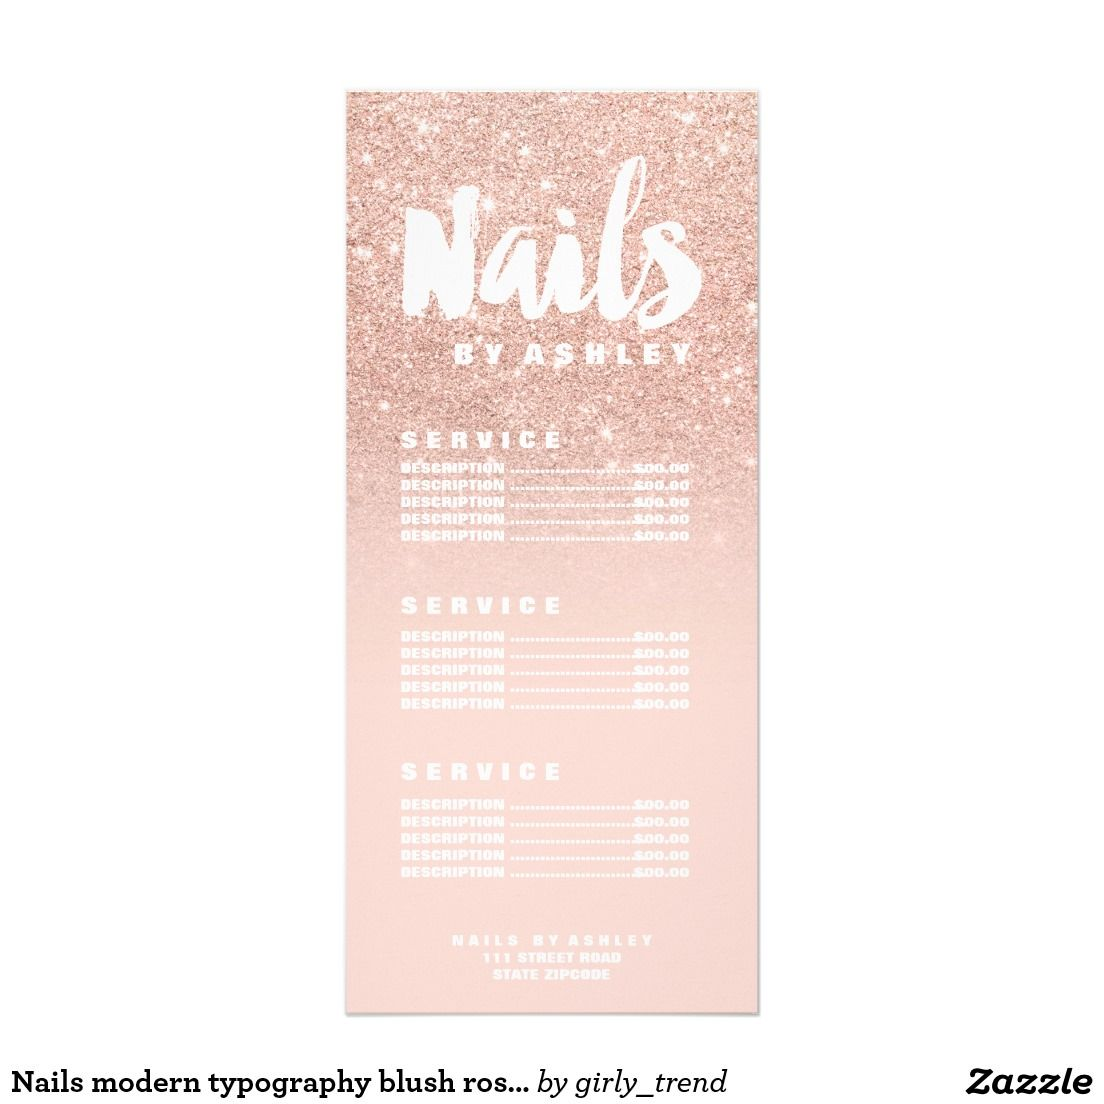 Nails modern typography blush rose gold price list rack card ...